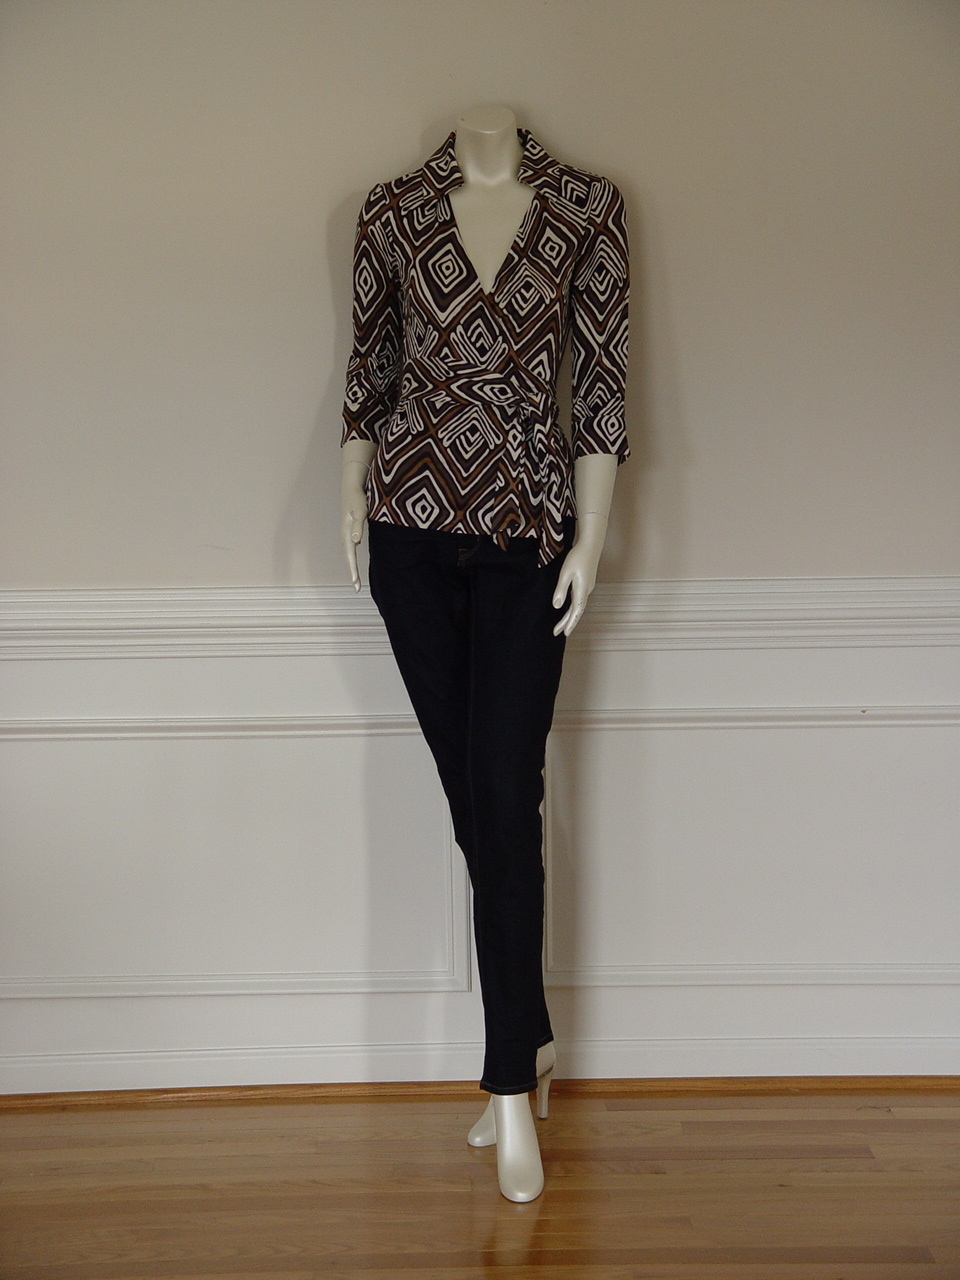 DIANE von FURSTENBERG JILL VINTAGE TRIBAL DIAMOND NEUTRAL TOP BLOUSE -US 8 -UK12